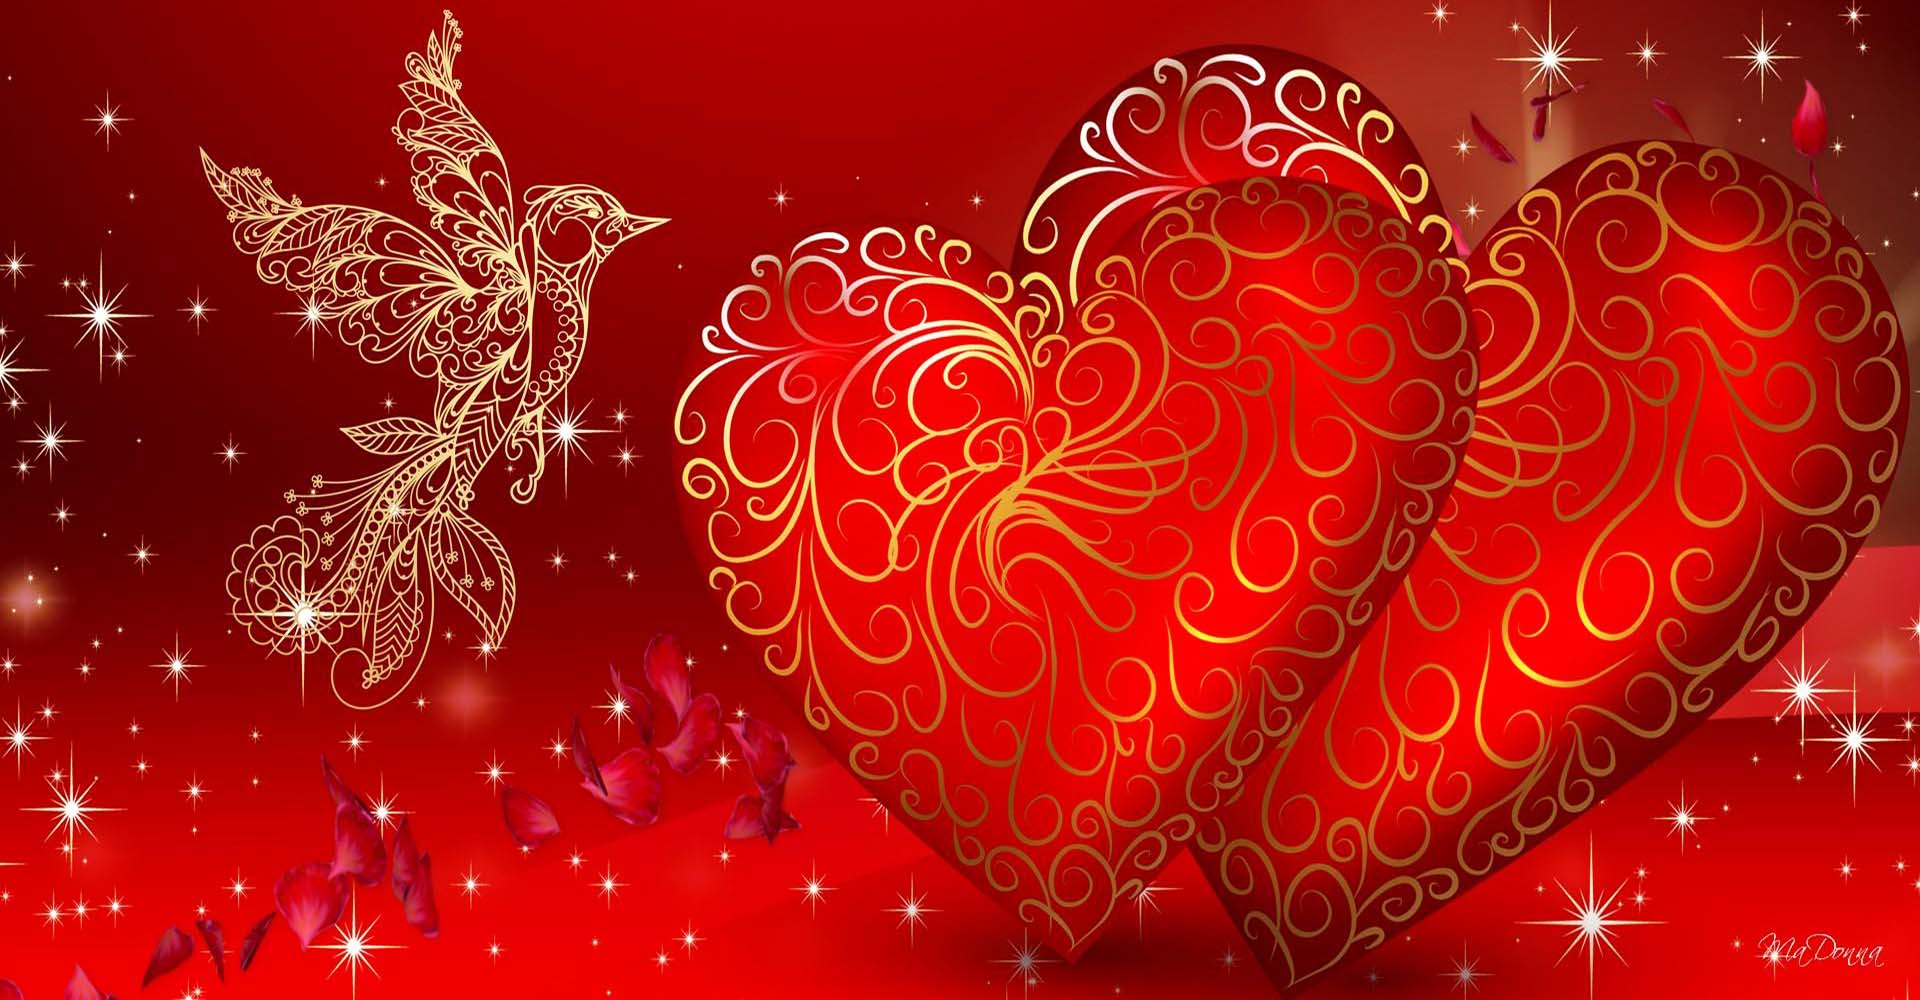 Love Wallpaper Pic : Love Heart Wallpapers 2016 - Wallpaper cave